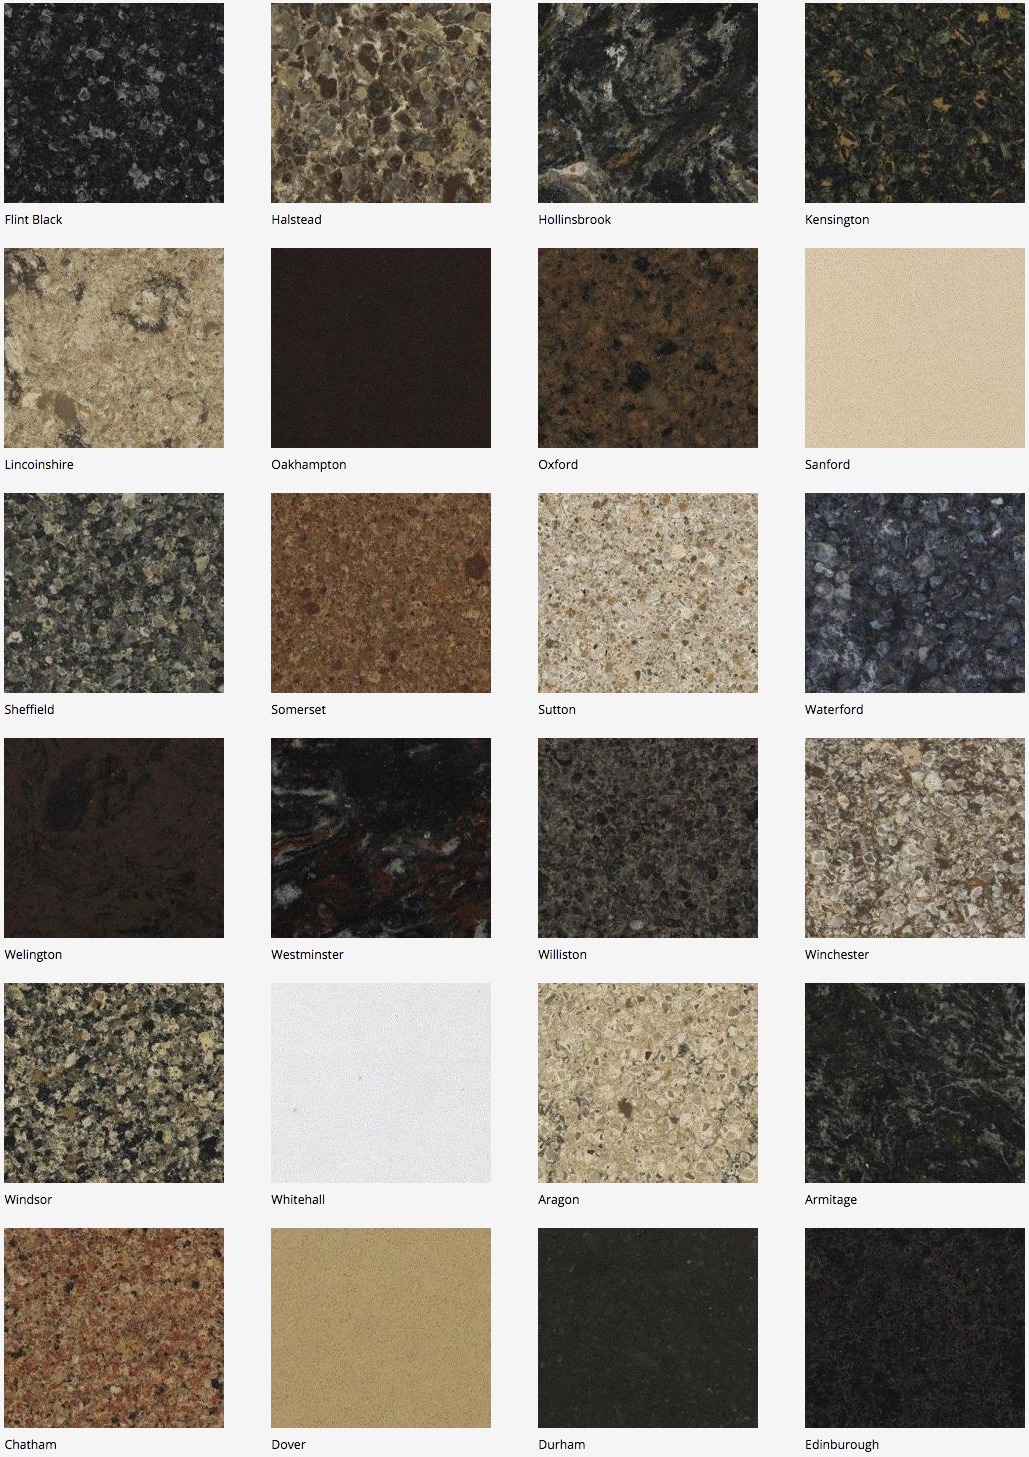 Cambria Countertop Sale • O&G Industries Earth Products Showcase